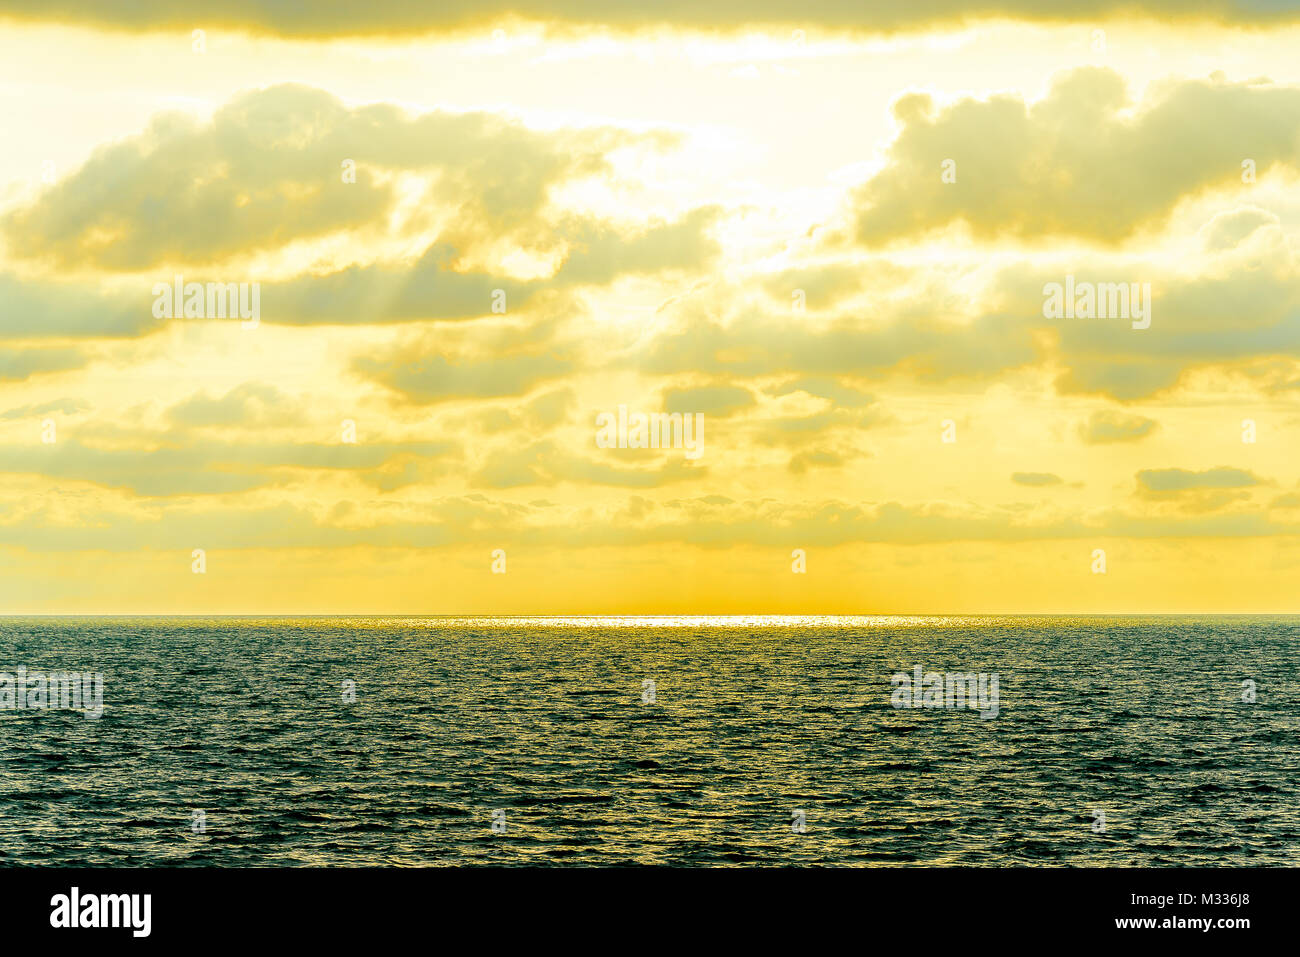 Stylized abstract landscape seascape sunset long exposure with clouds under different shades of blue, orange, yellow - Stock Image